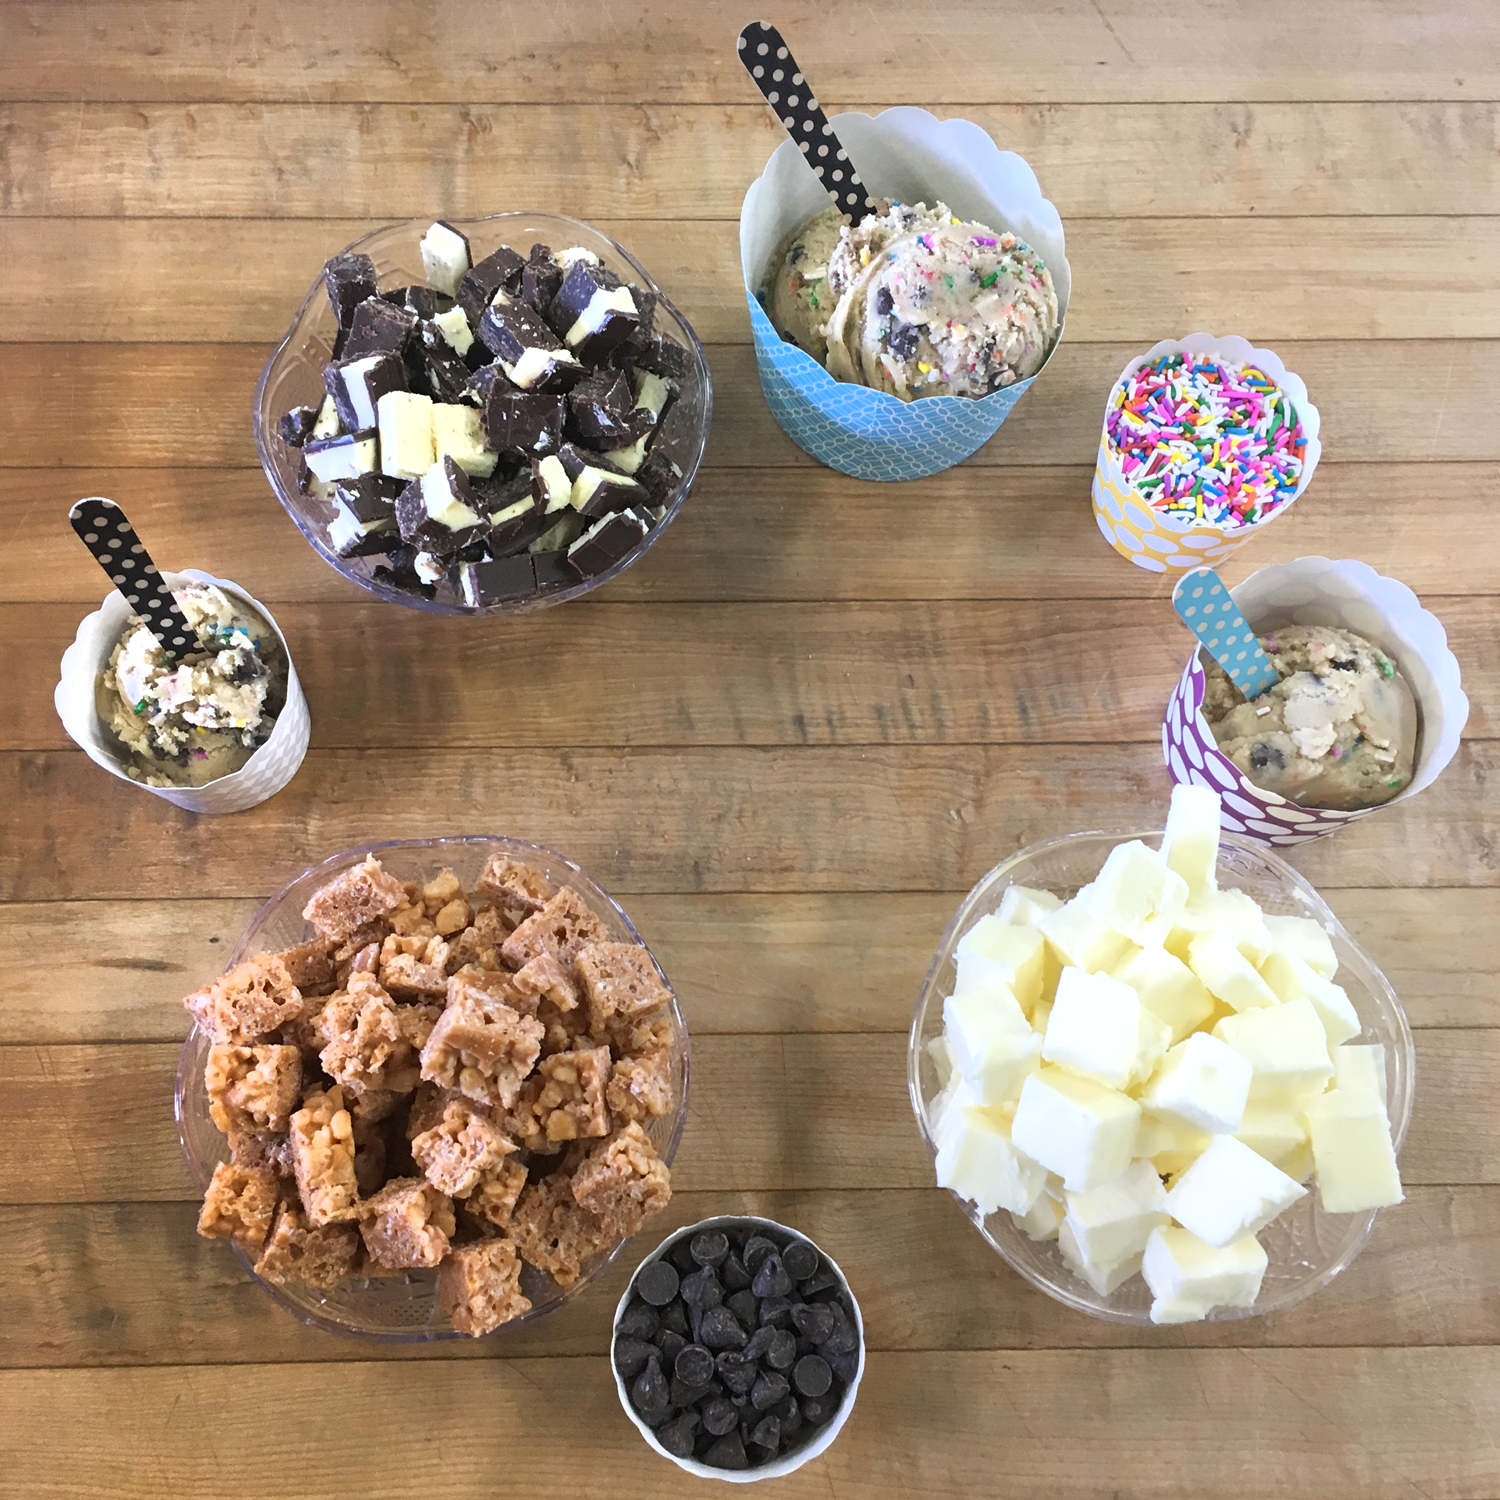 INTRODUCING - Doughlicious: a completely edible and bakeable cookie dough!We have been working on this project for almost a year!! So happy to finally be announcing this to our Shop Family. Pop into The Shop to get your taste of our rotating selections!Make sure to grab a punch card to get your 10th bowl free!